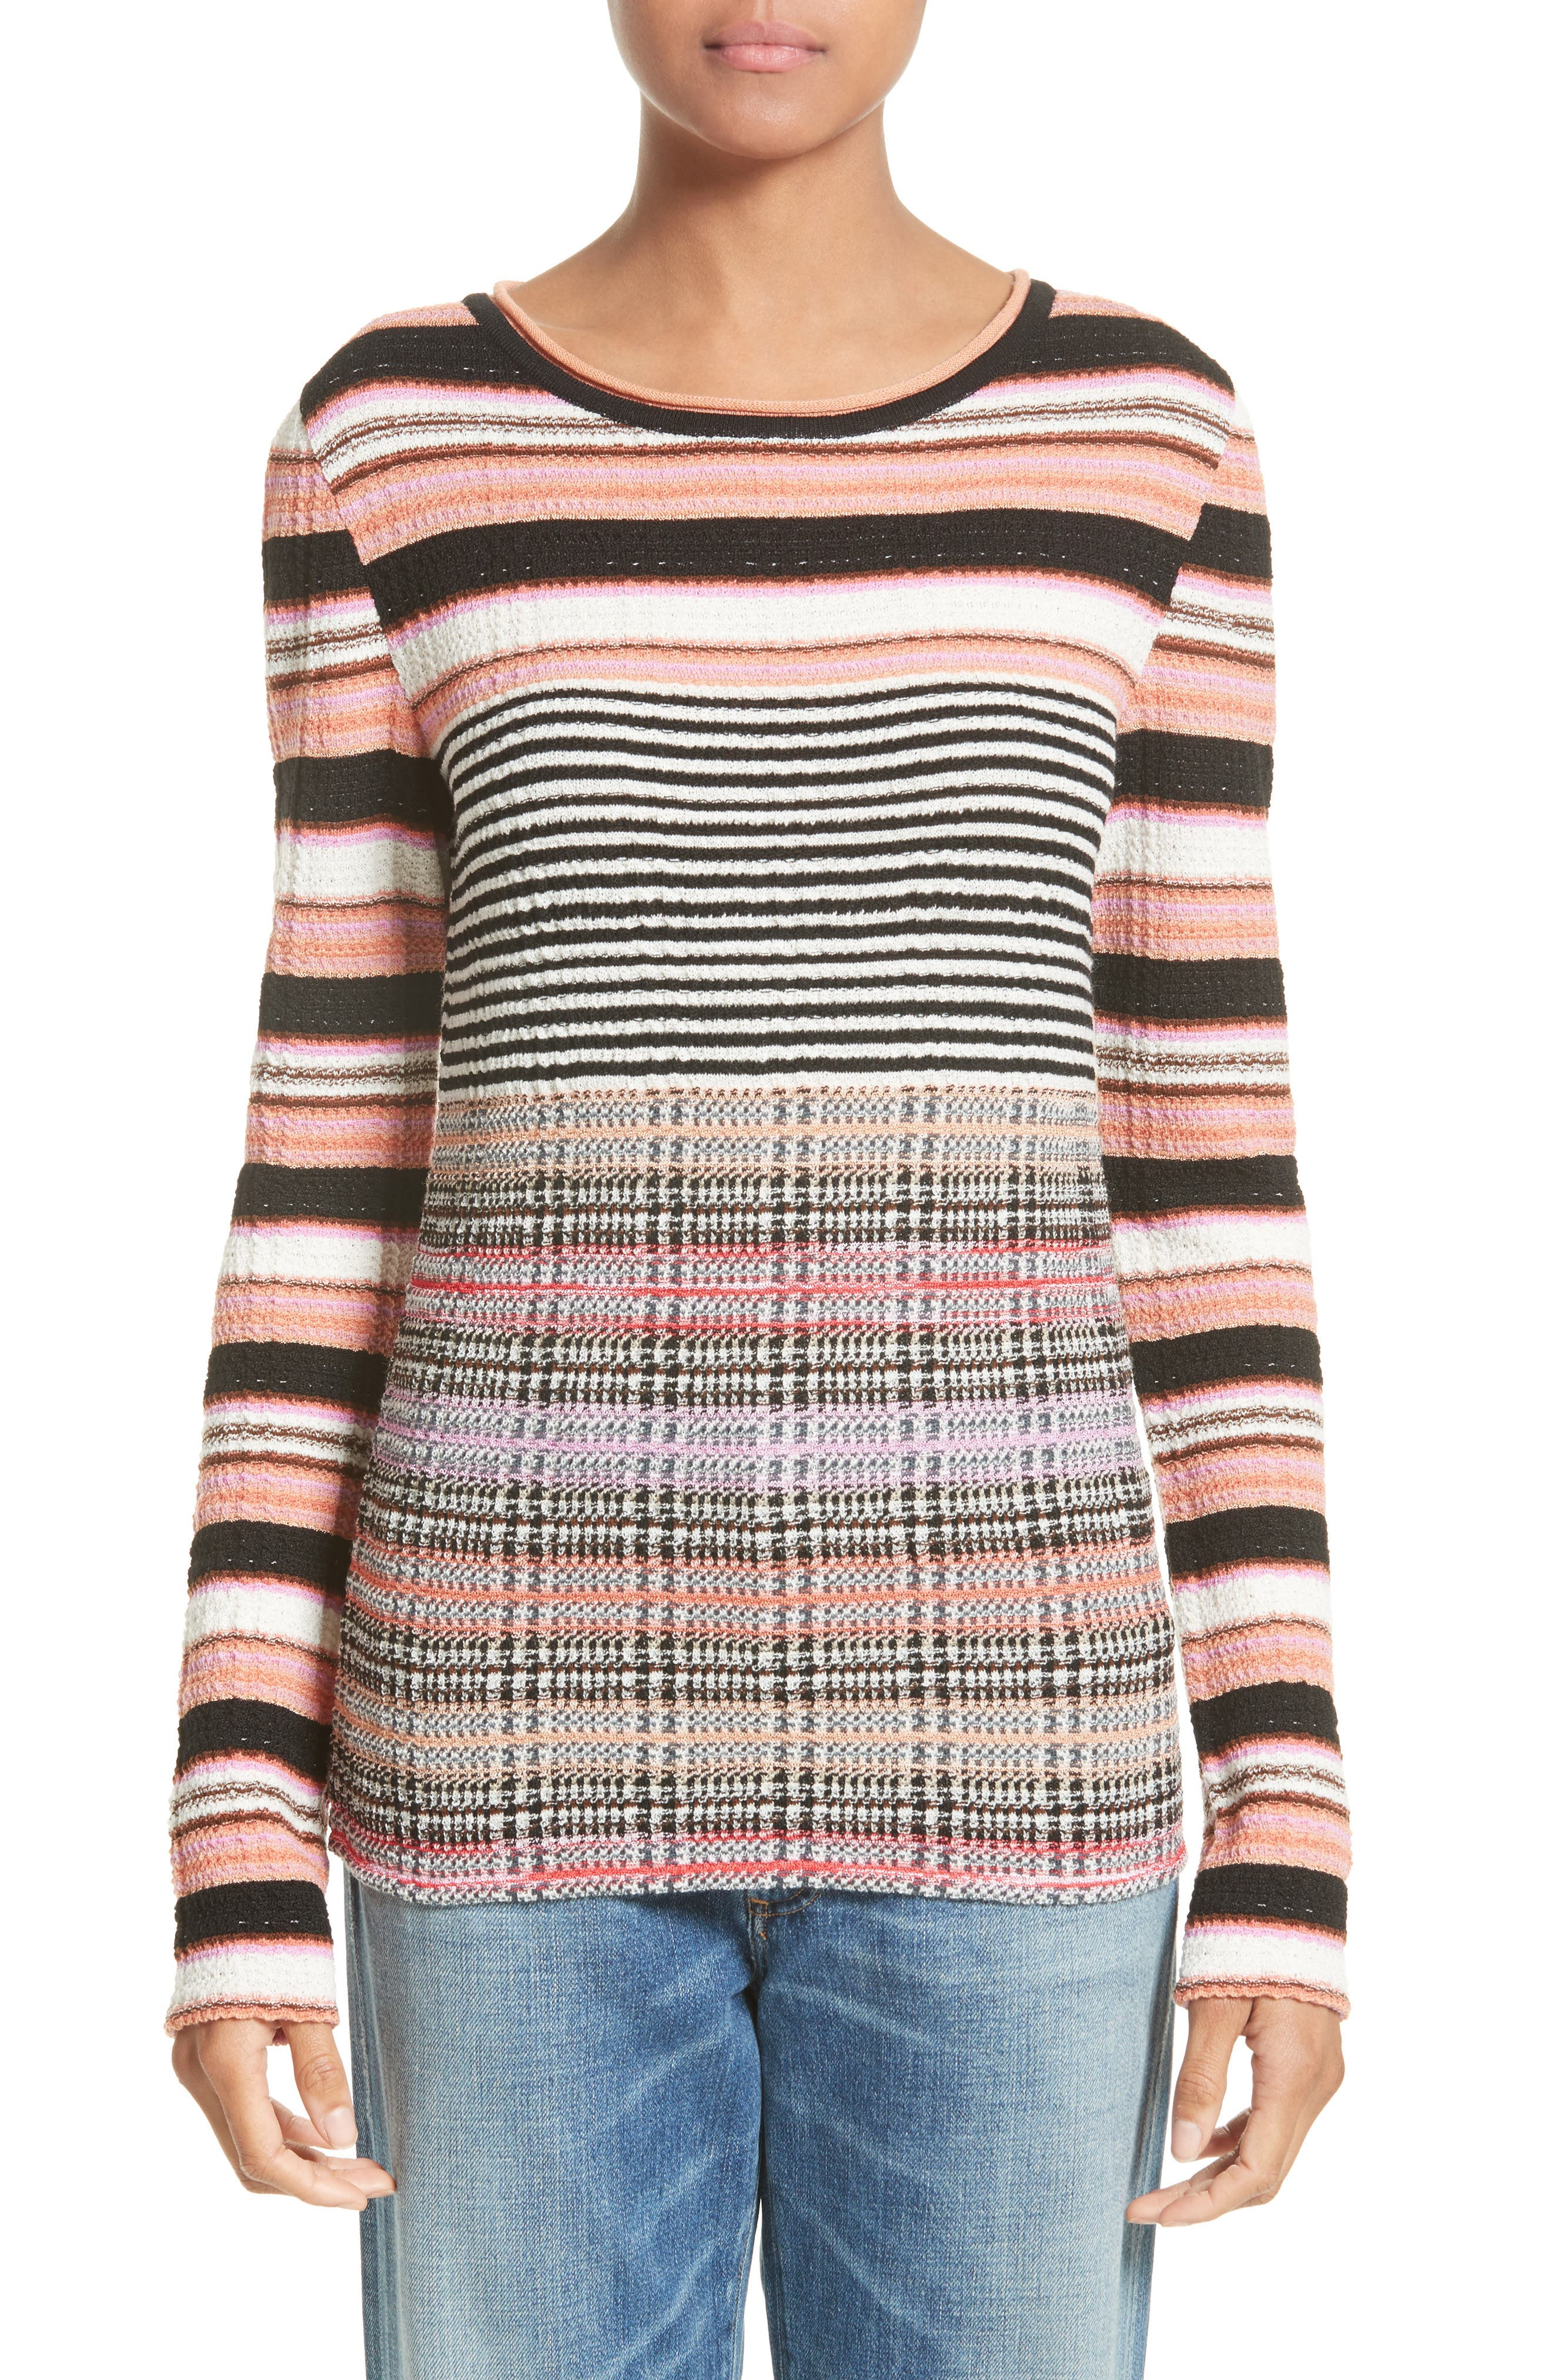 Wool Blend Sweater,                         Main,                         color, Pink Multi